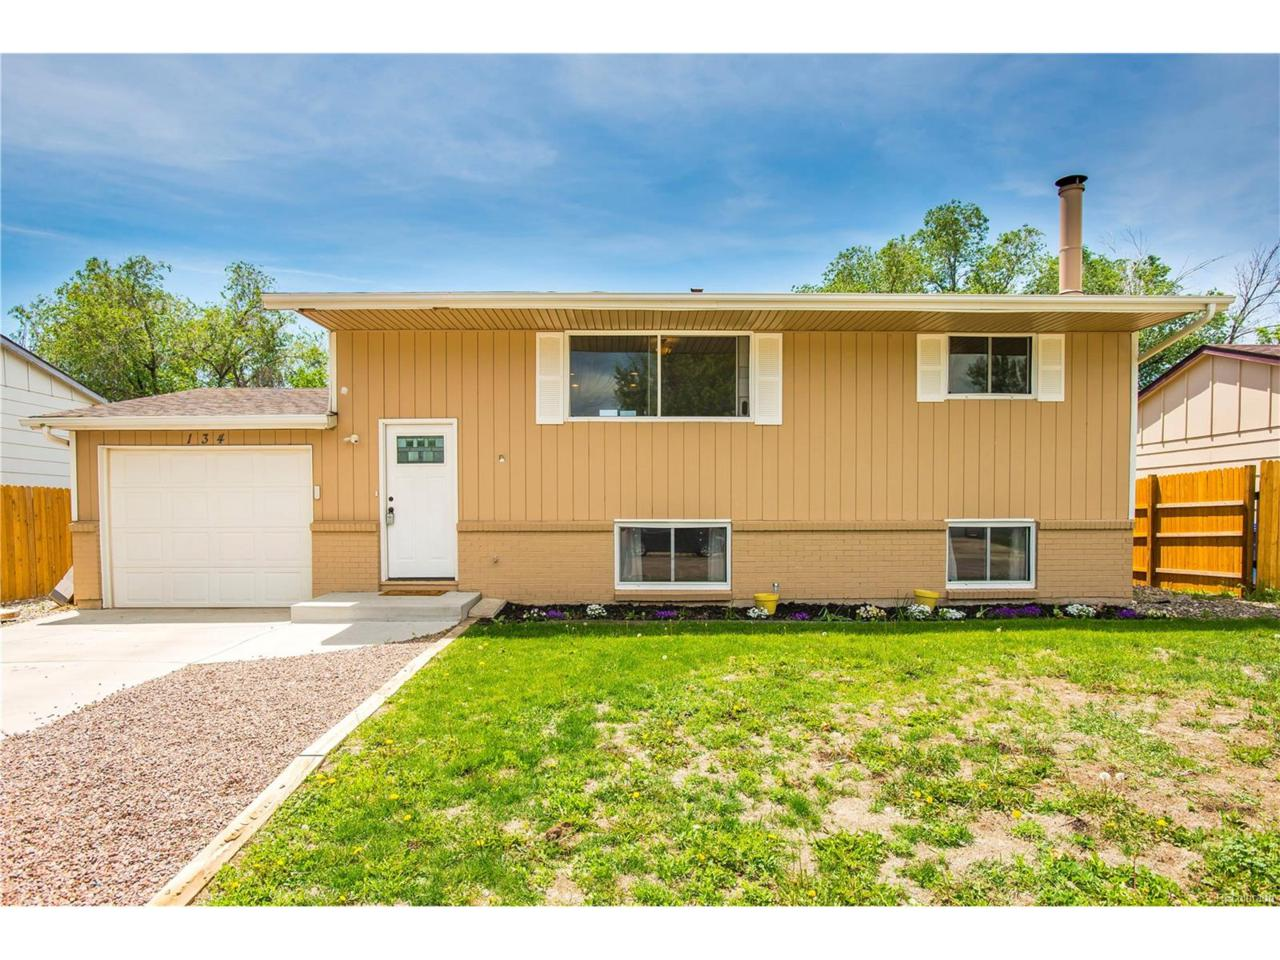 134 Cherry Circle, Fountain, CO 80817 (MLS #9072204) :: 8z Real Estate